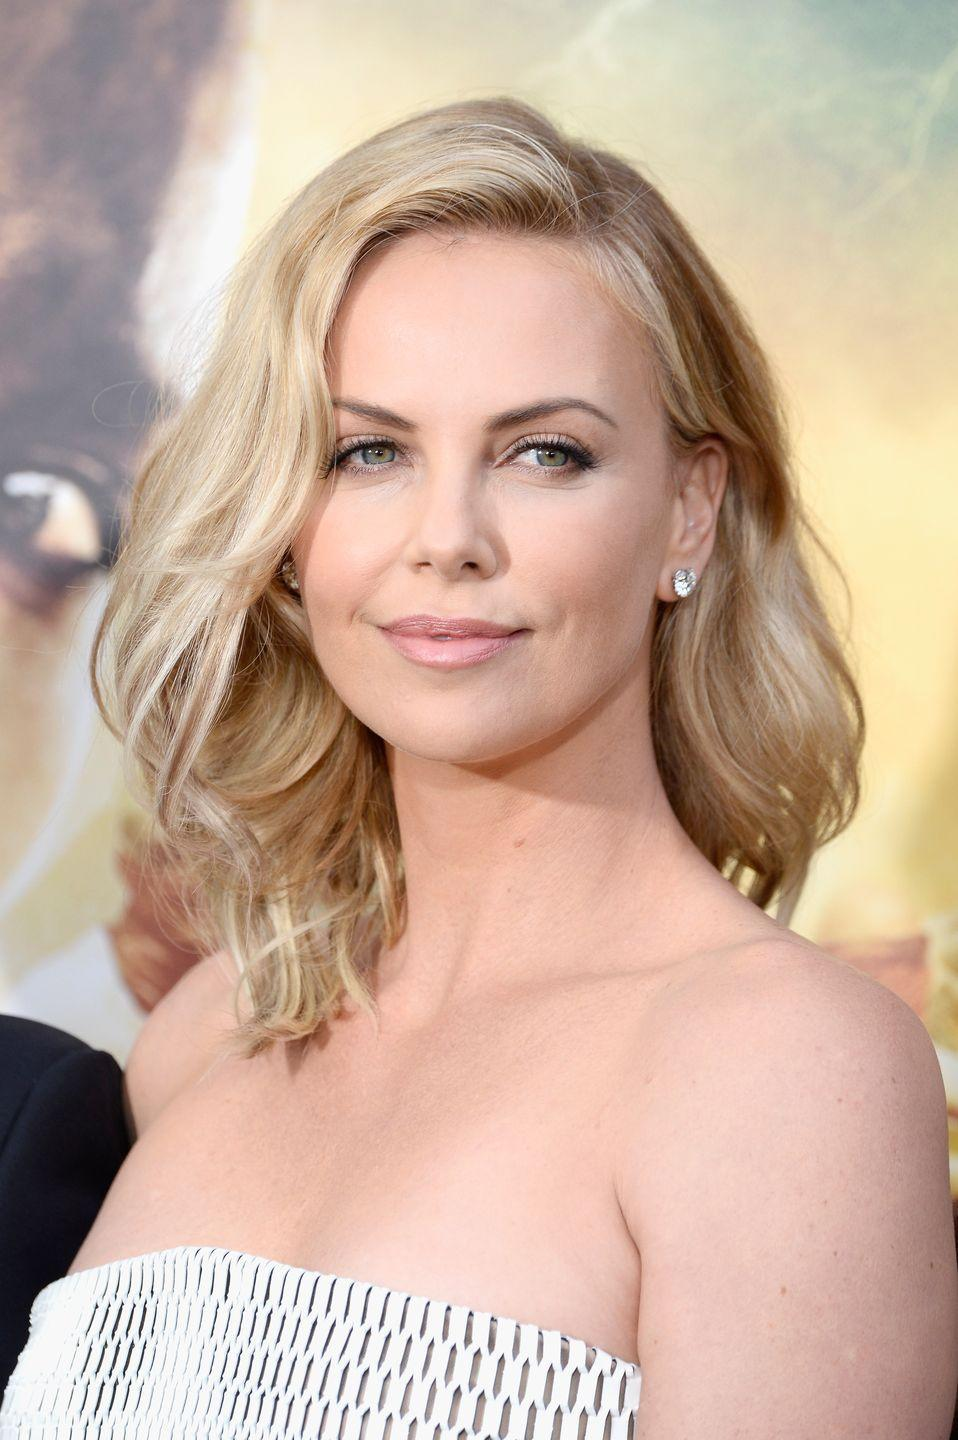 "<p>When asked about the 2000 movie, Theron simply <a href=""http://people.com/celebrity/esquire-names-charlize-theron-the-sexiest-woman/"" rel=""nofollow noopener"" target=""_blank"" data-ylk=""slk:stated"" class=""link rapid-noclick-resp"">stated</a>, ""That was a bad, bad, bad movie."" </p>"